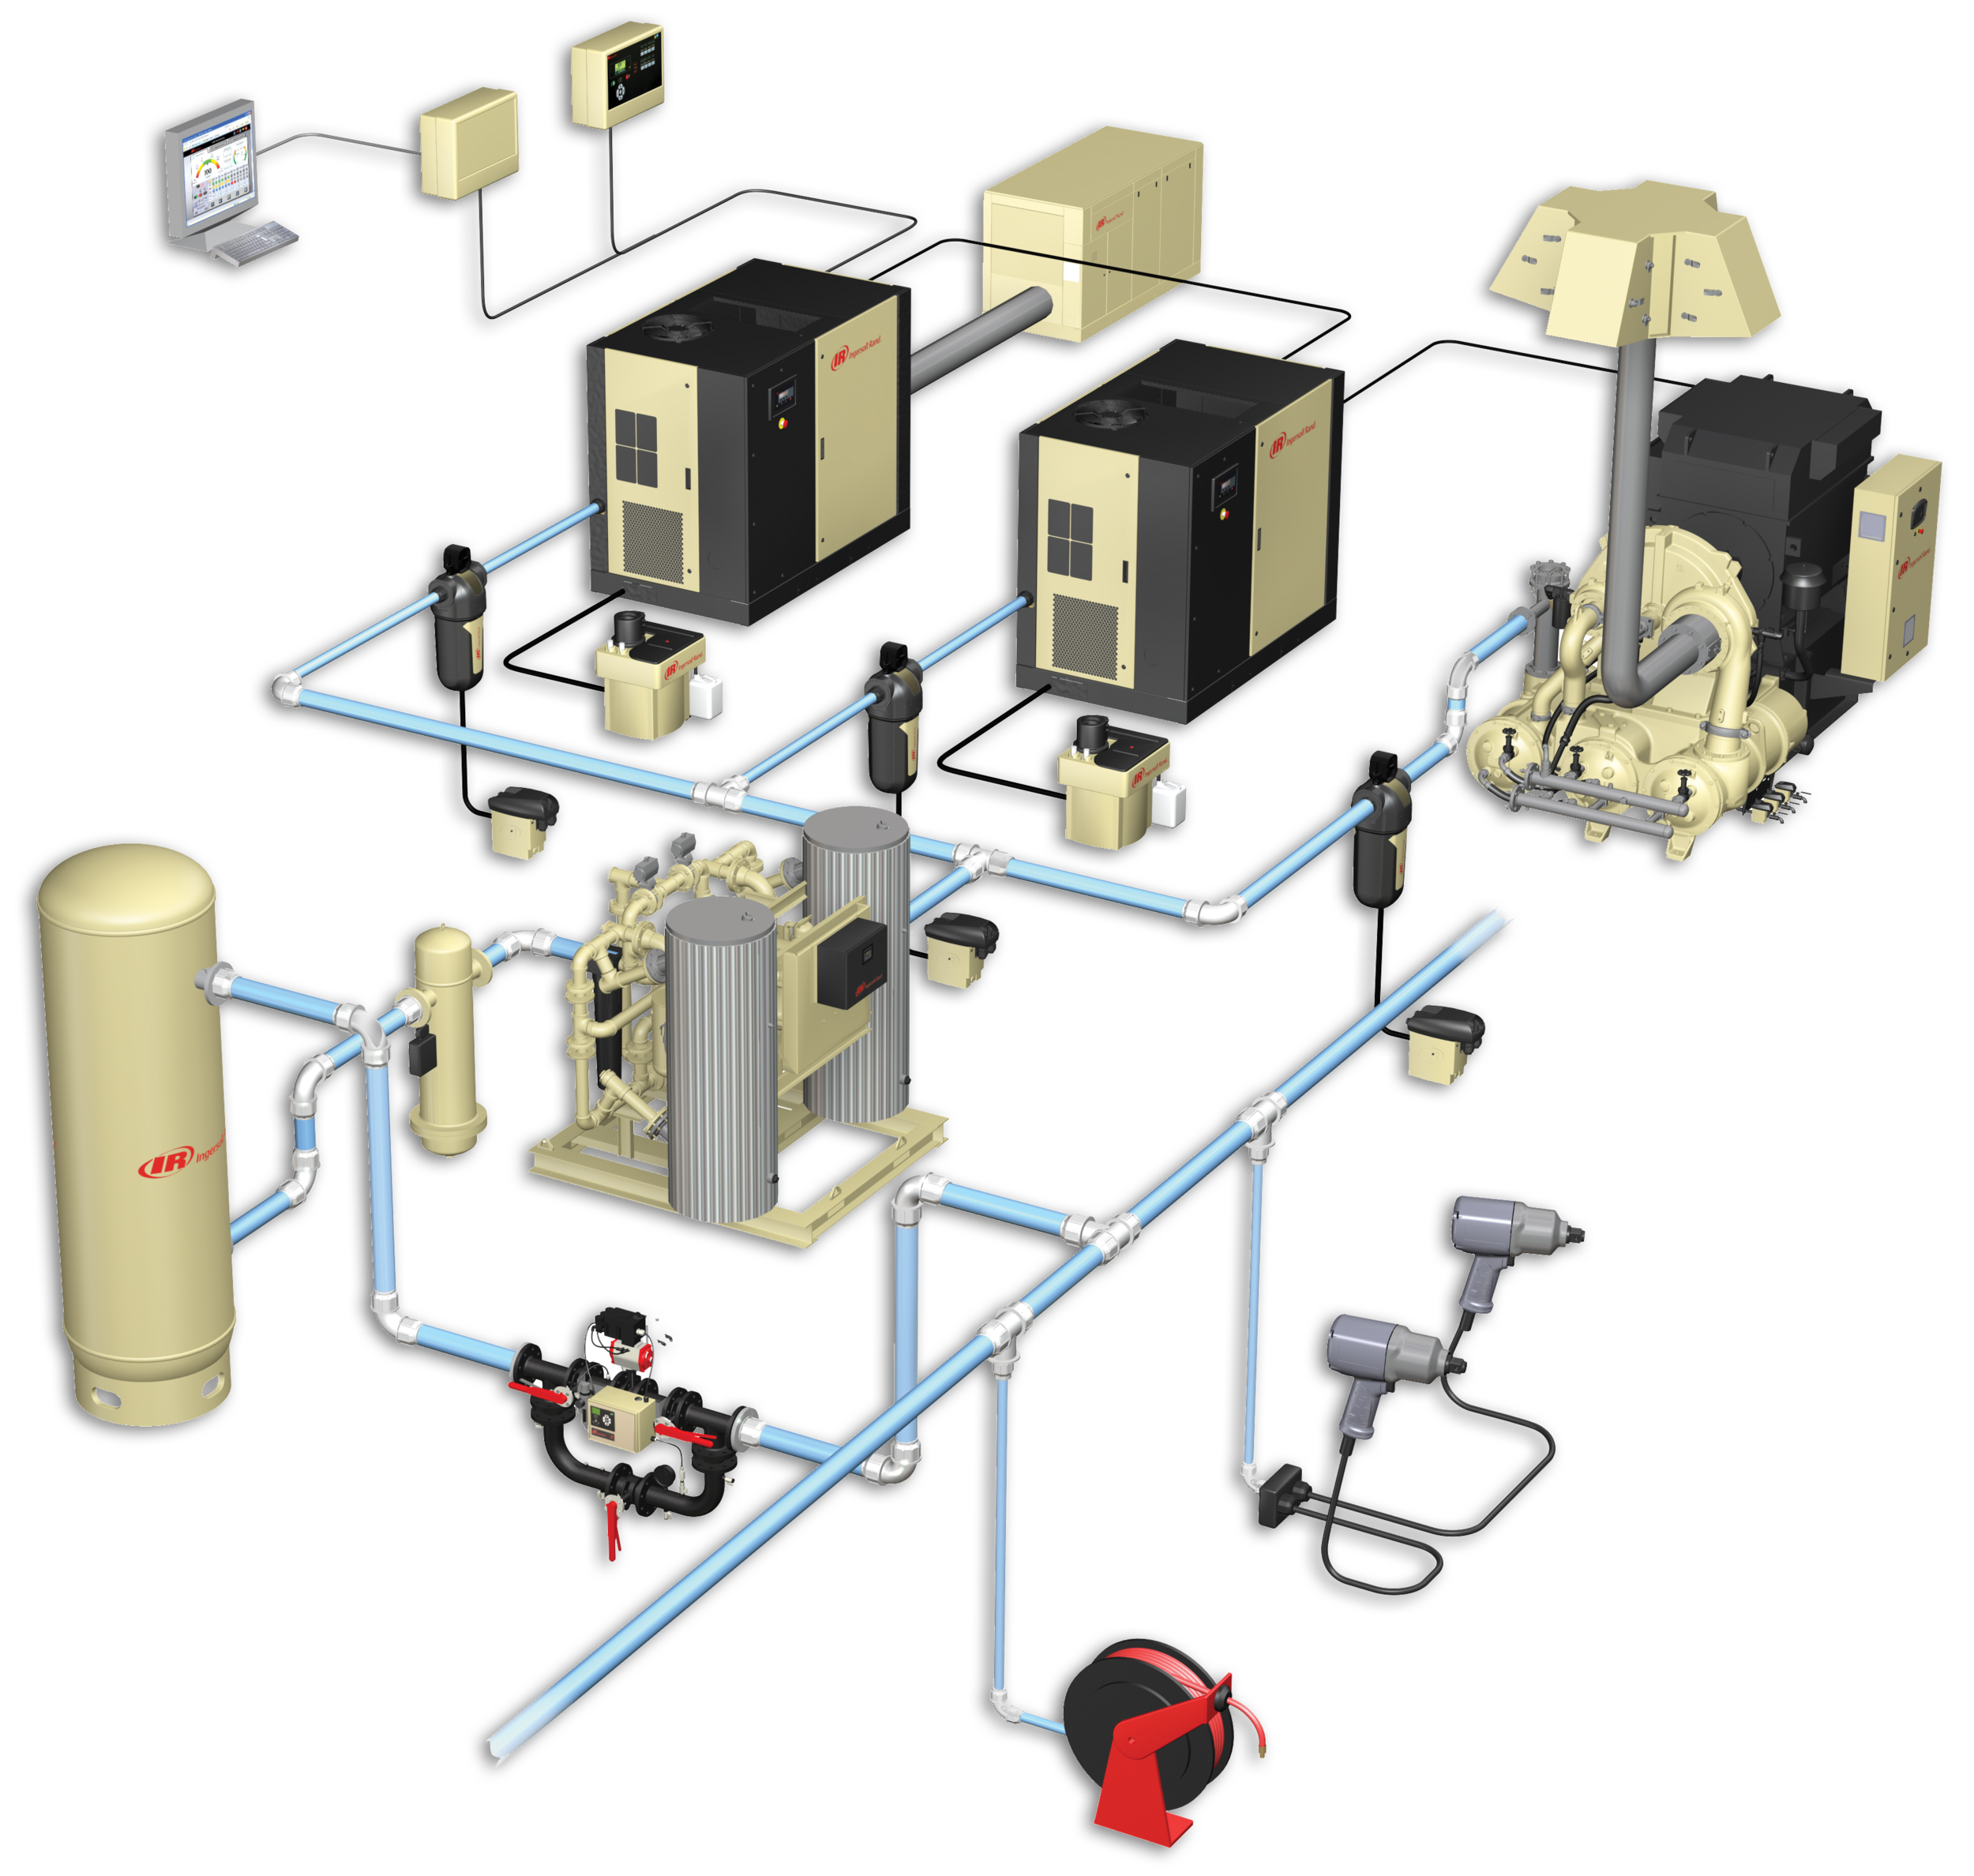 Compressed air system components.